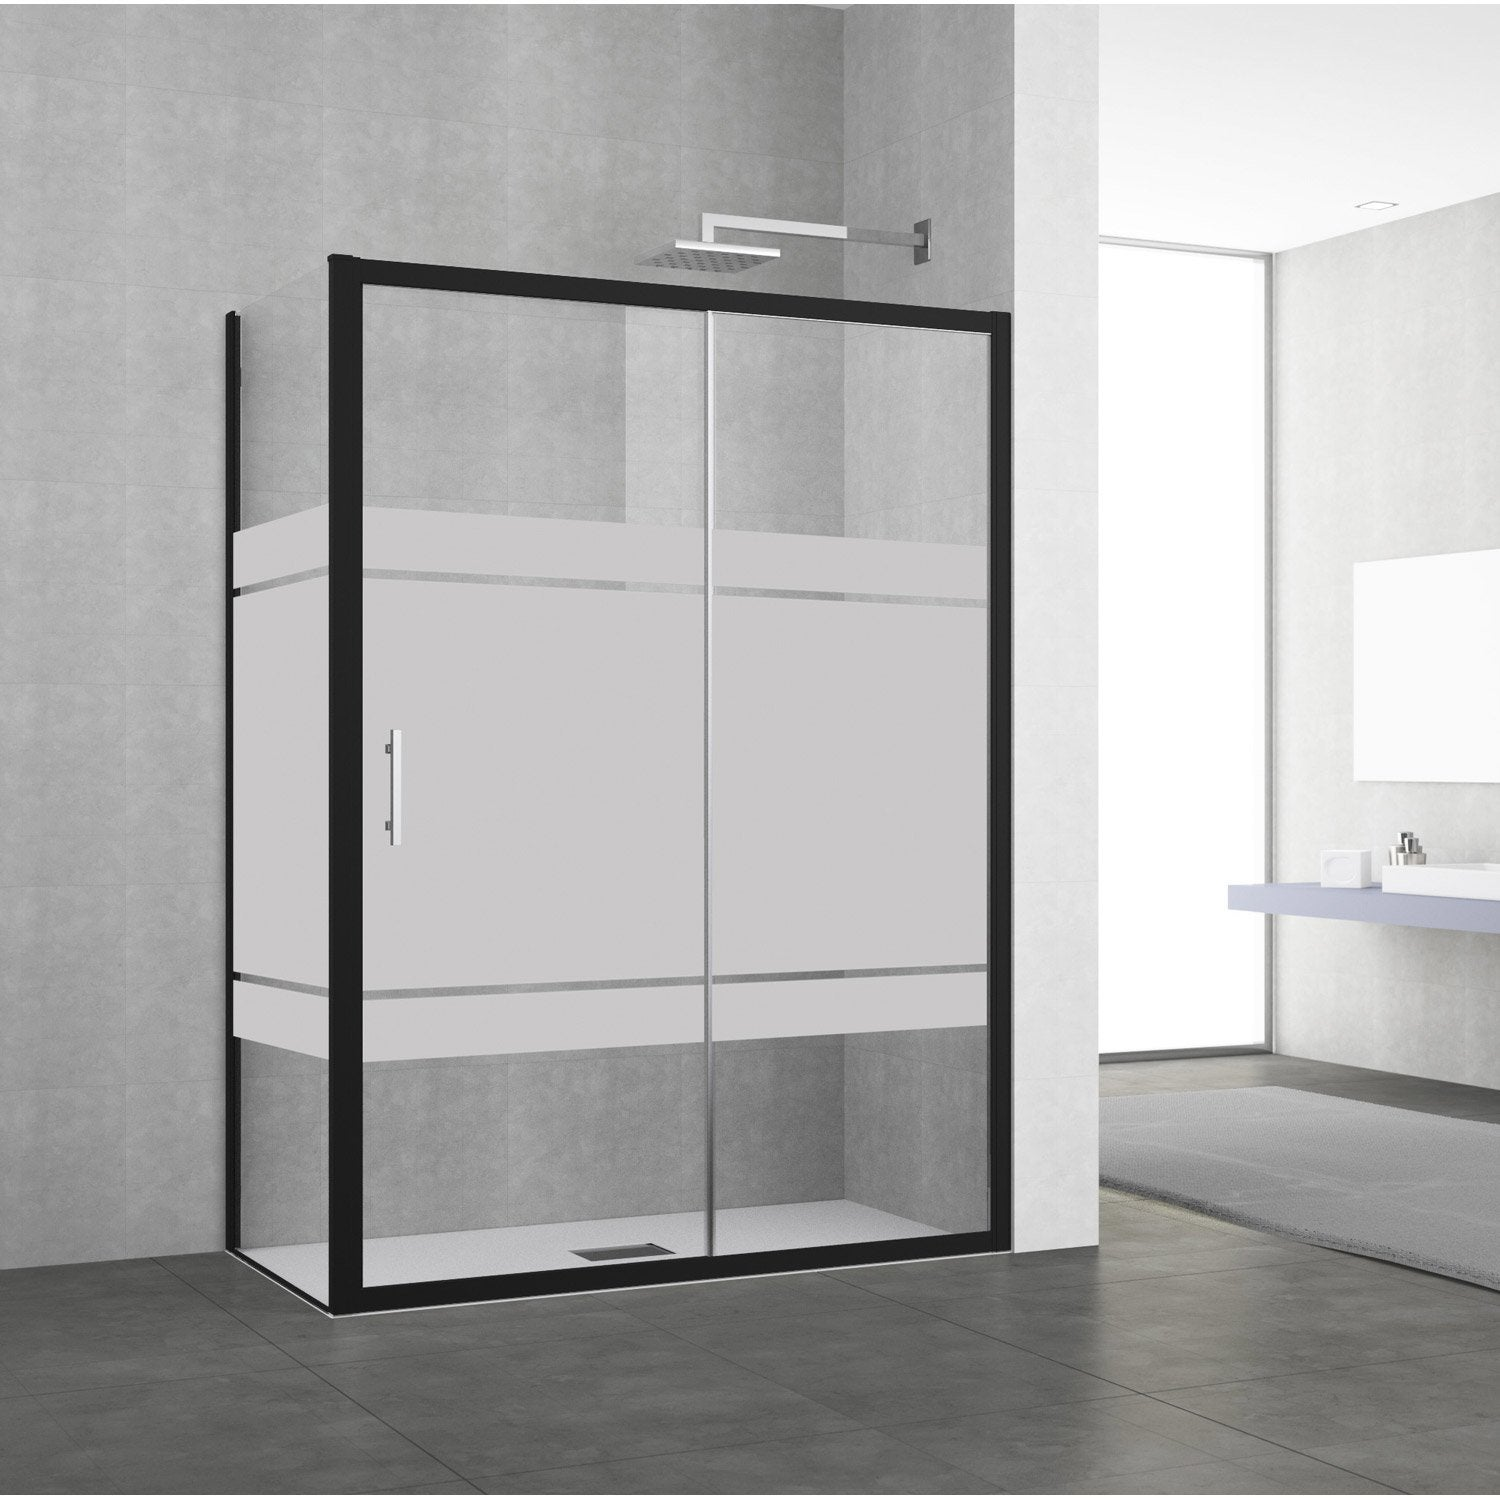 porte de douche coulissante 134 140 cm profil noir elyt. Black Bedroom Furniture Sets. Home Design Ideas